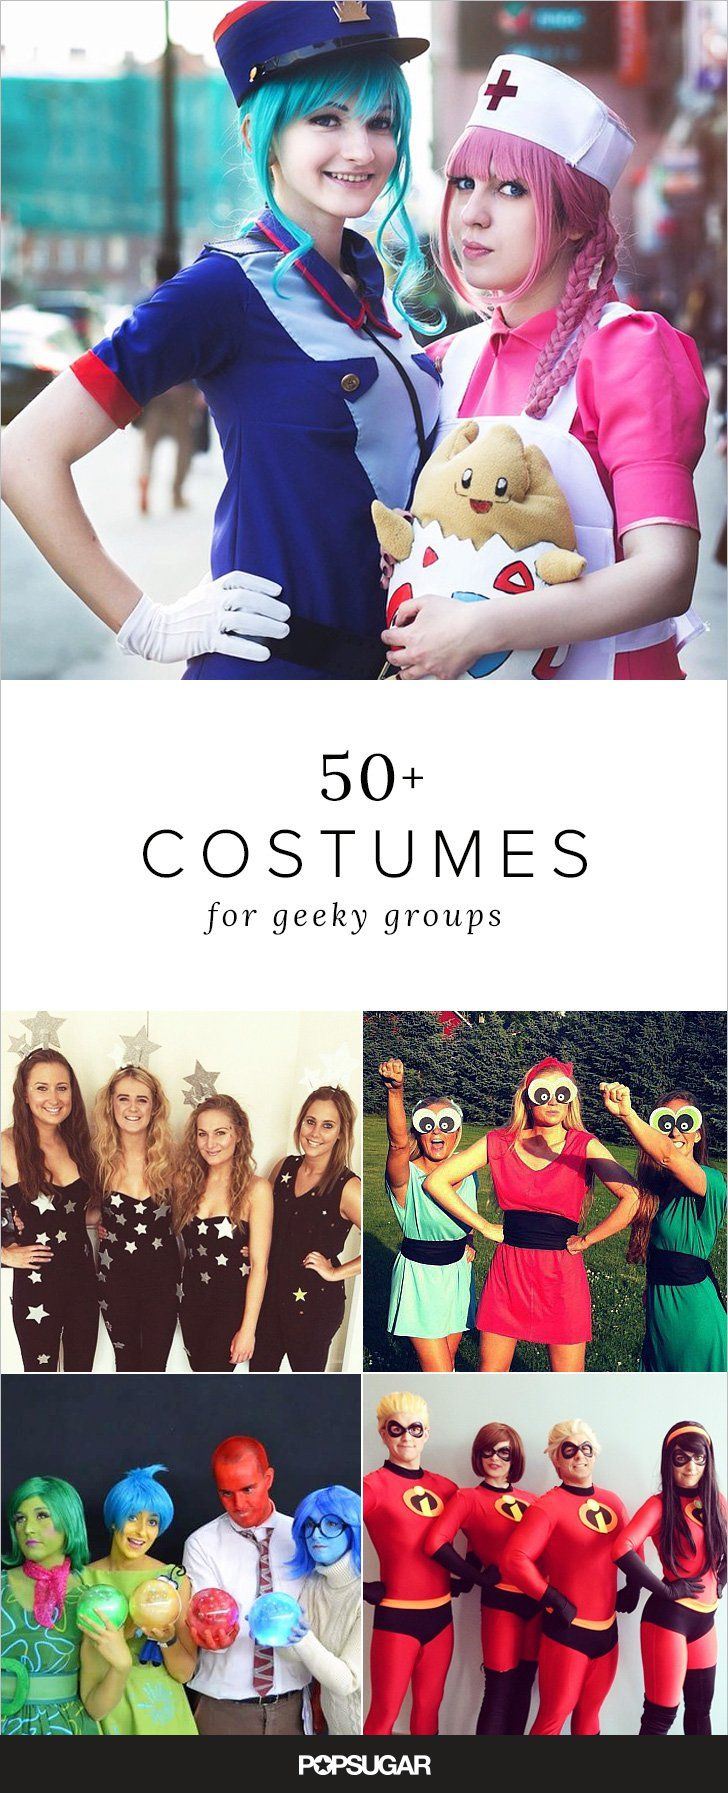 Pin for Later: 58 Epic Costumes For Geeky Groups